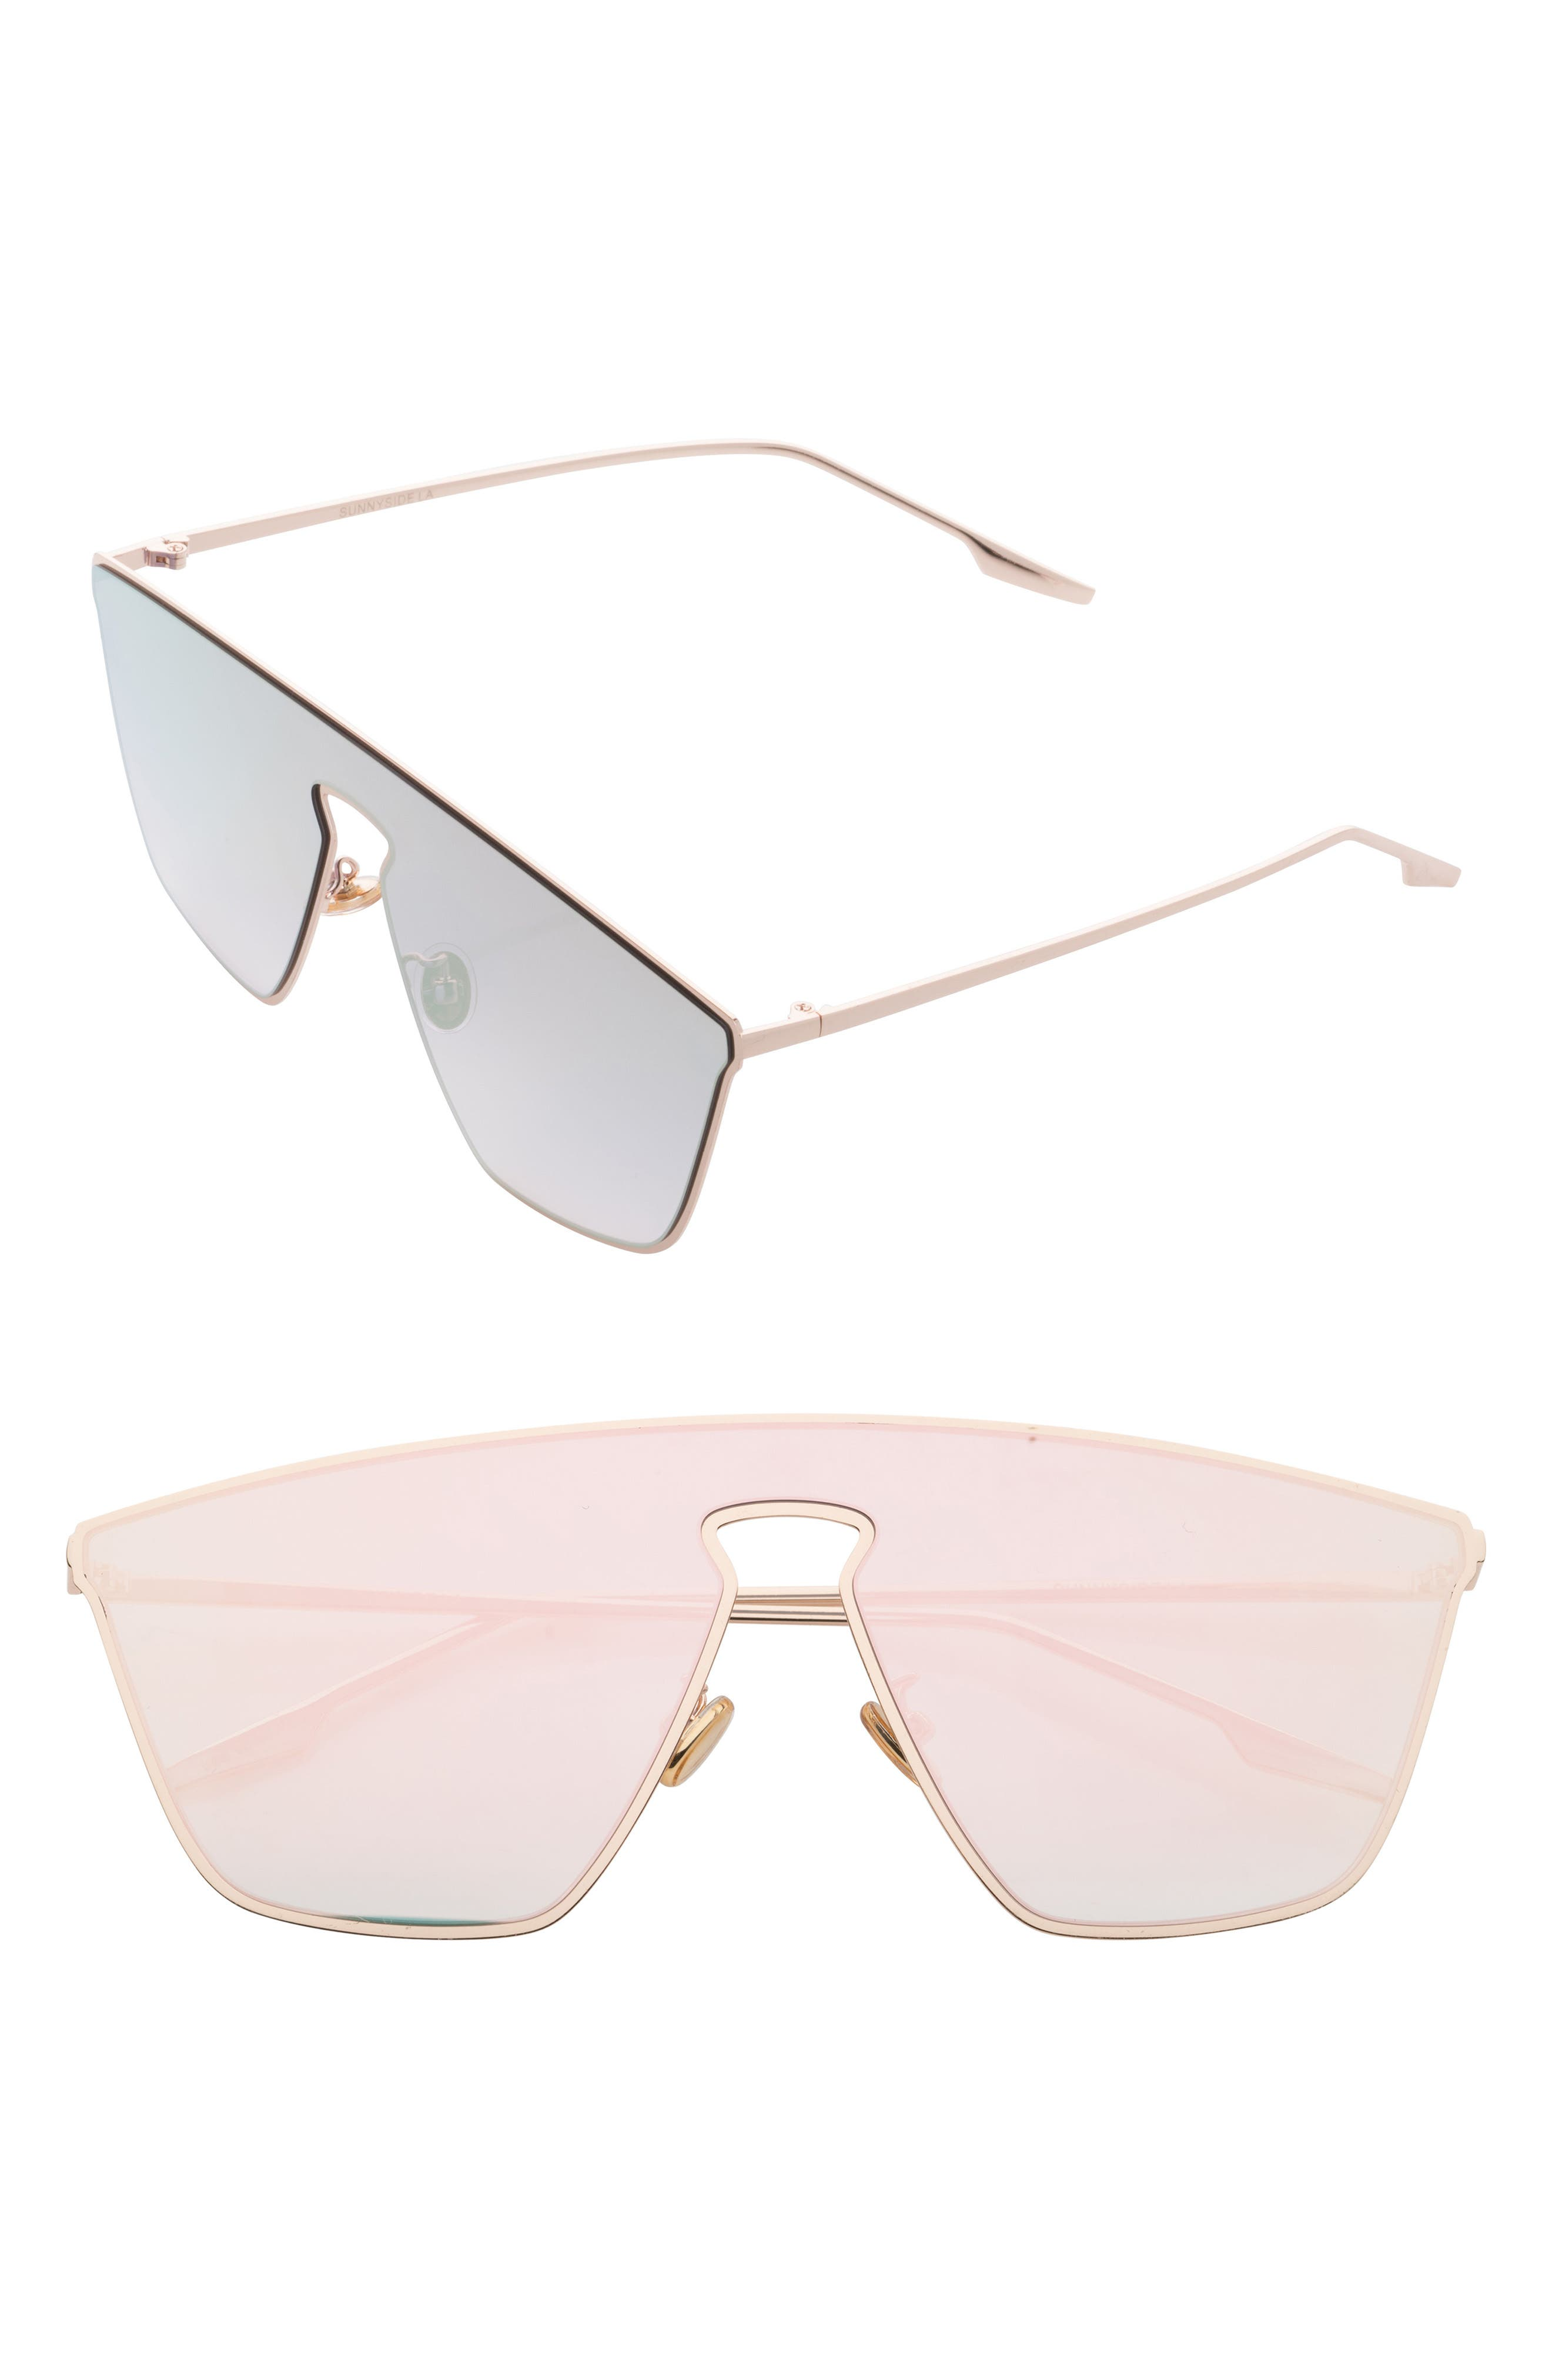 65mm Mirrored Shield Sunglasses,                             Main thumbnail 1, color,                             650